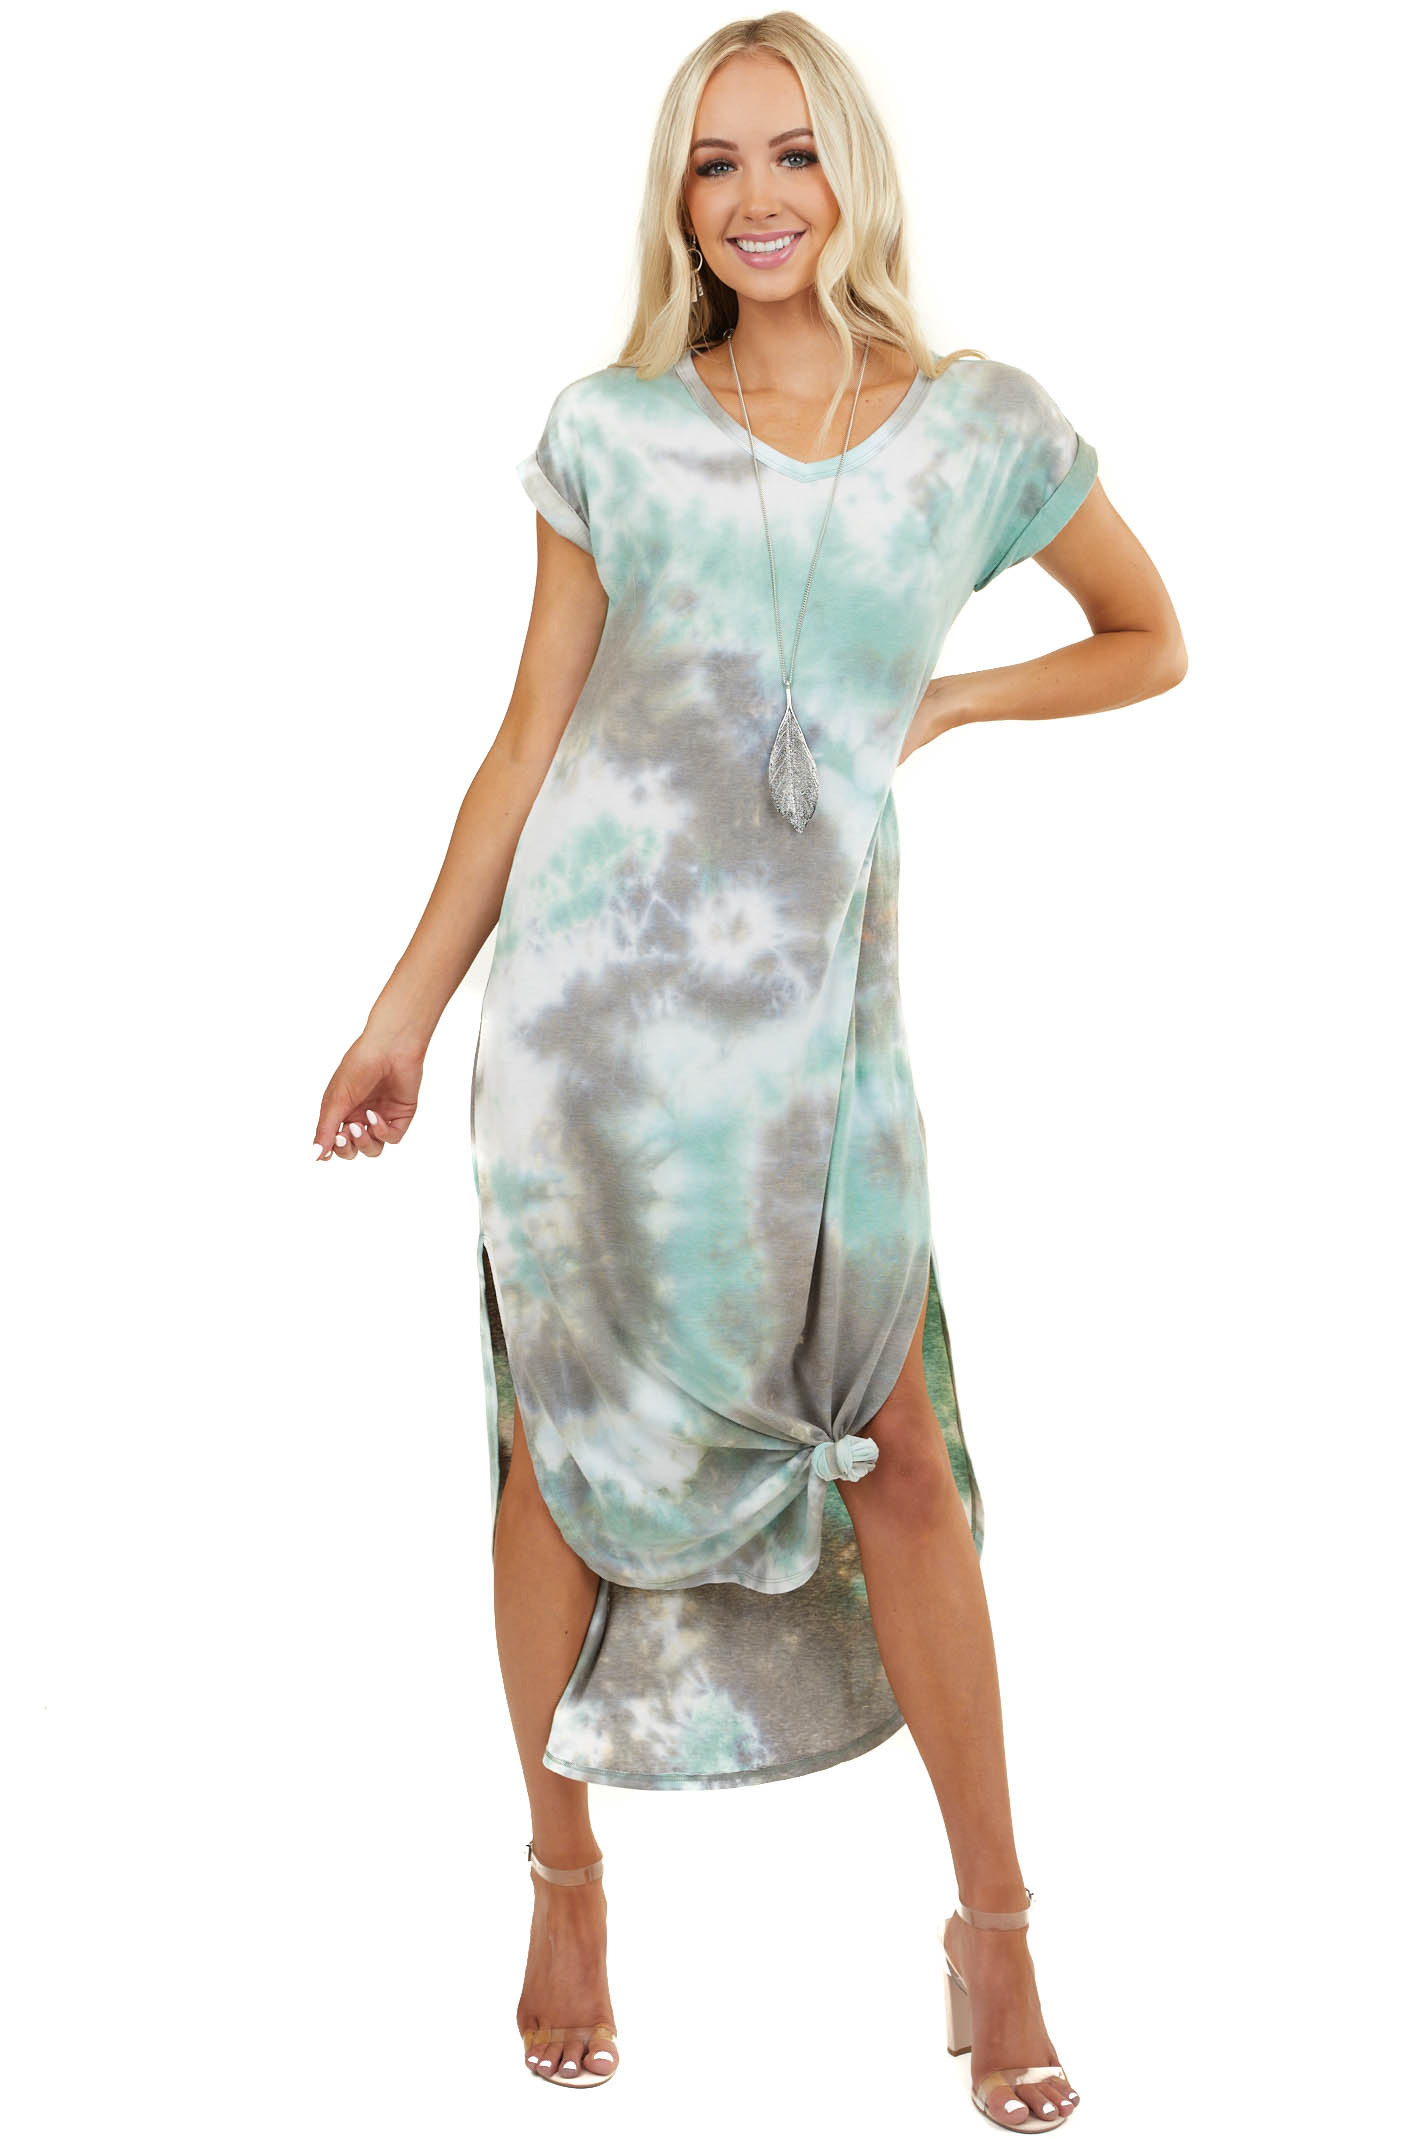 Mint Tie Dye Short Sleeve T Shirt Maxi Dress with Pockets